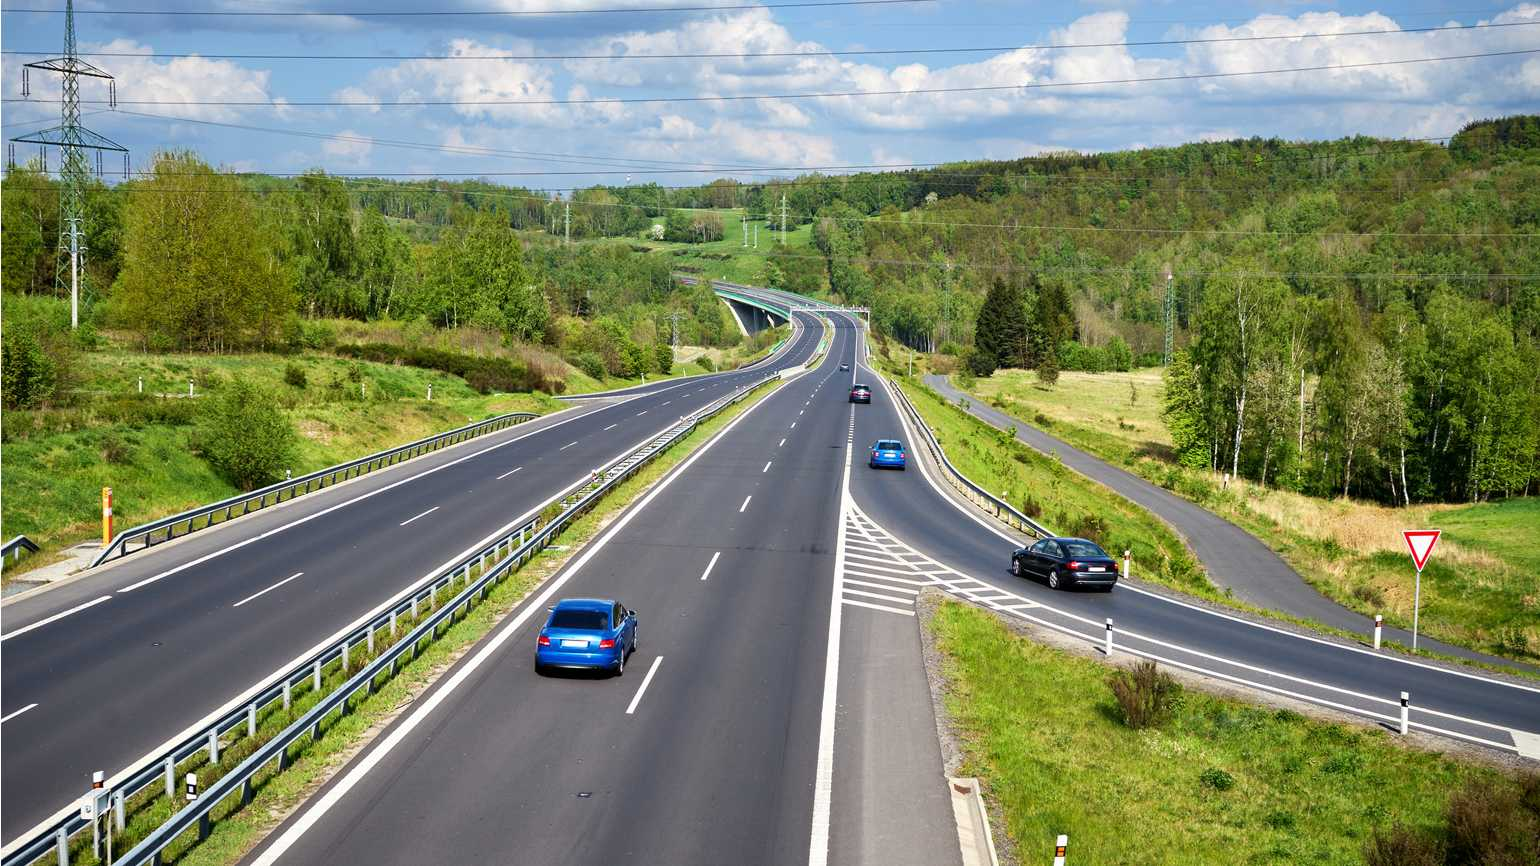 Various cars entering a highway lined with lush forests.